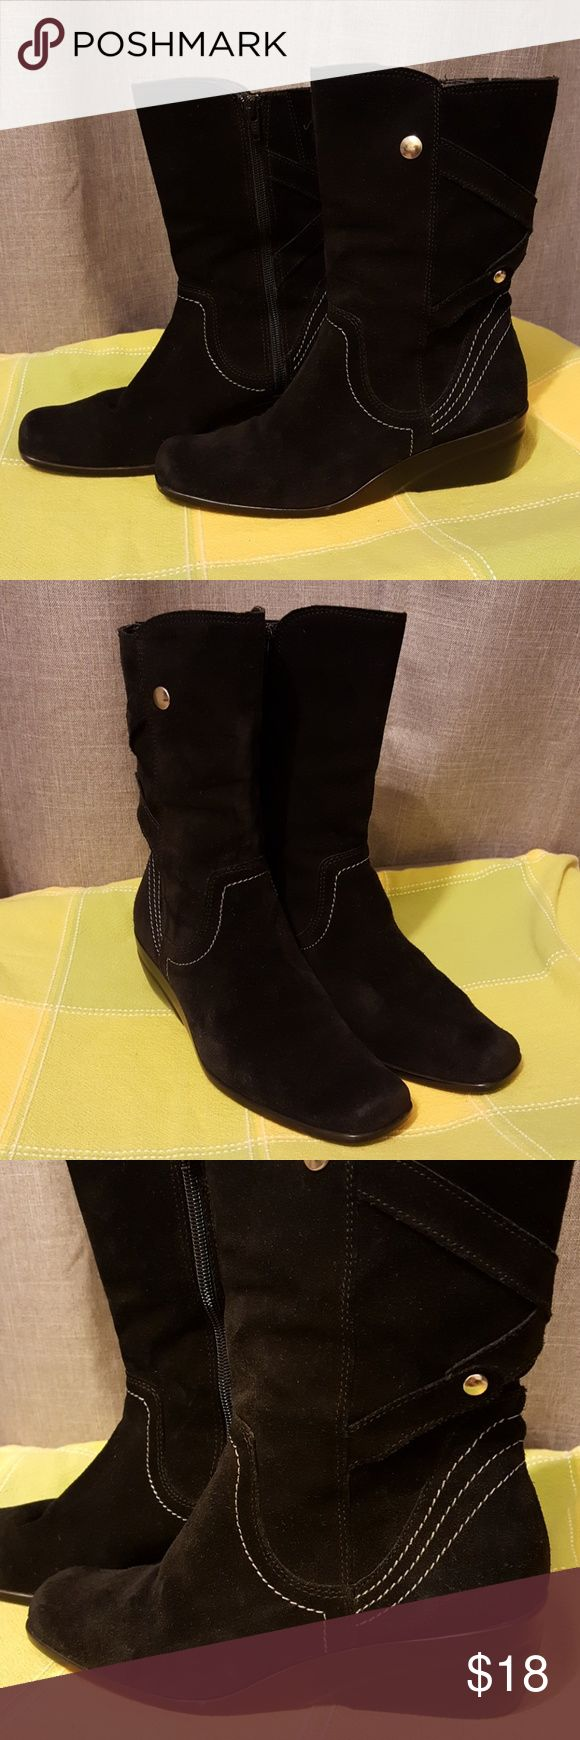 Andrea Suede Wedge Ankle Boots Andrea black suede wedge ankle boots, side zippers. Wedge height 2 inches + 8 inches height from bottom wedge to upper ankle. In clean and excellent condition. Made in Mexico. No box included Andrea Shoes Ankle Boots & Booties